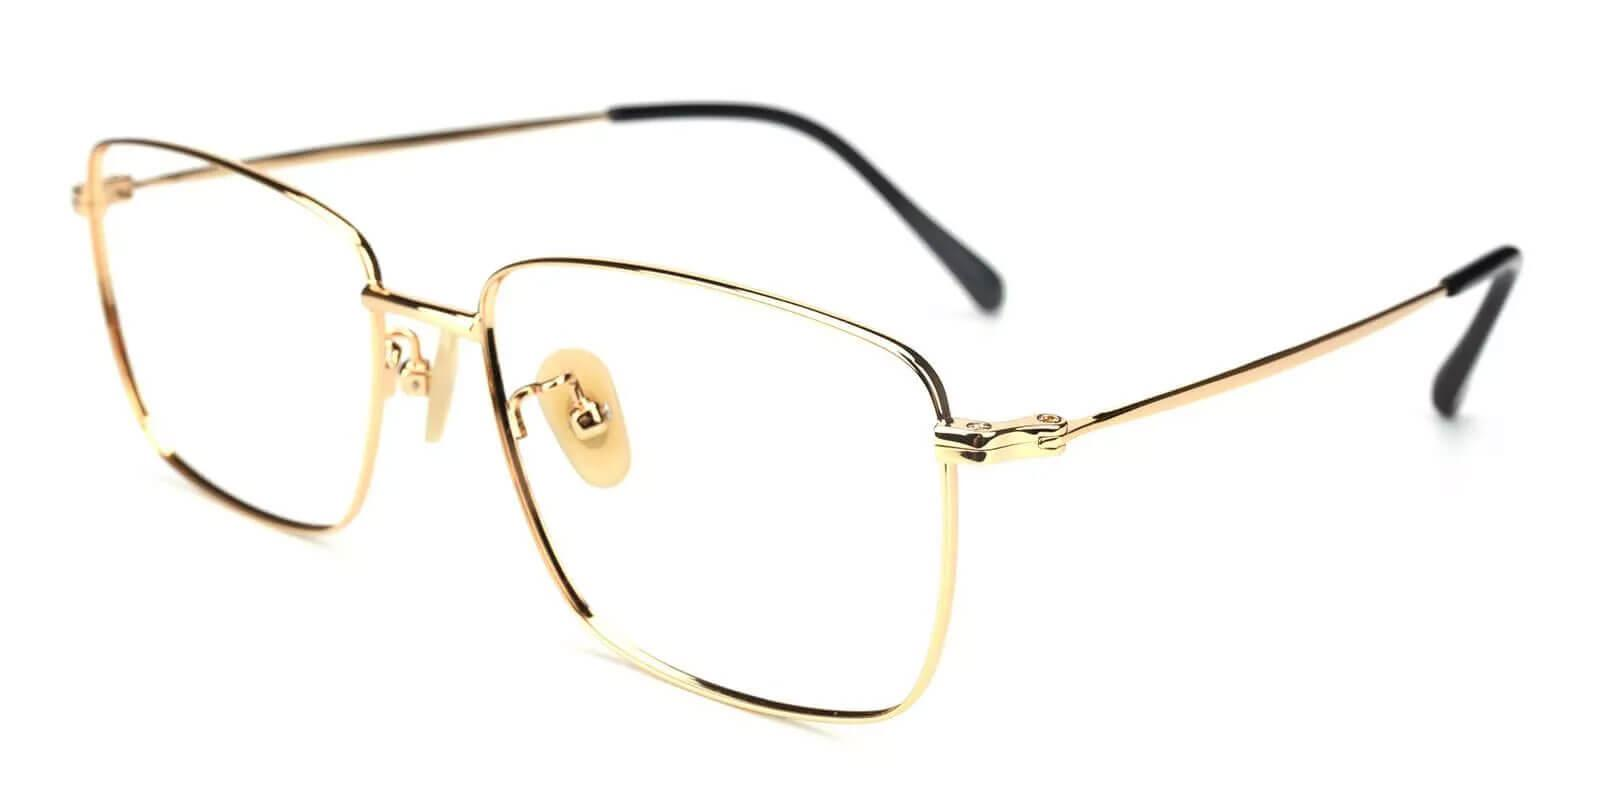 Morocco Gold Titanium Lightweight , NosePads , Eyeglasses Frames from ABBE Glasses